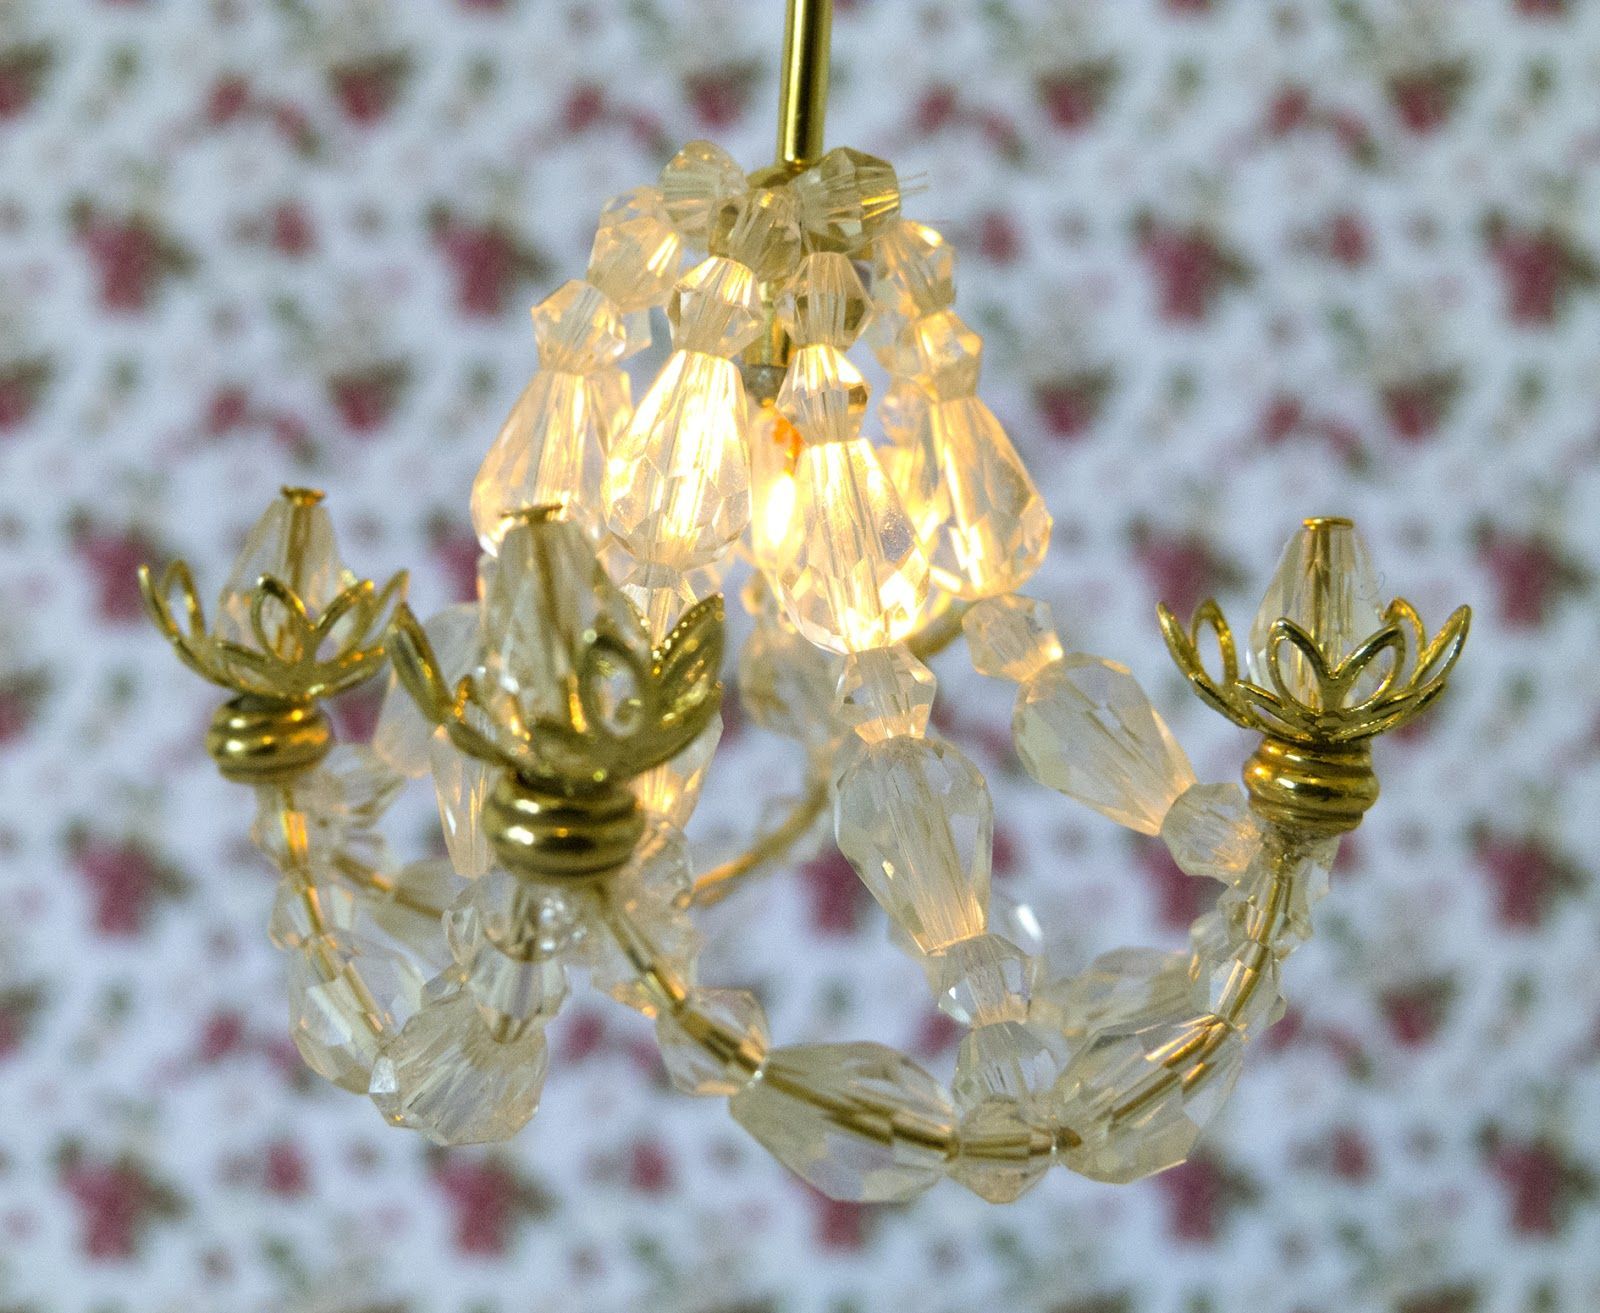 DIY Crystal Chandelier (With images) | Diy crystals ...